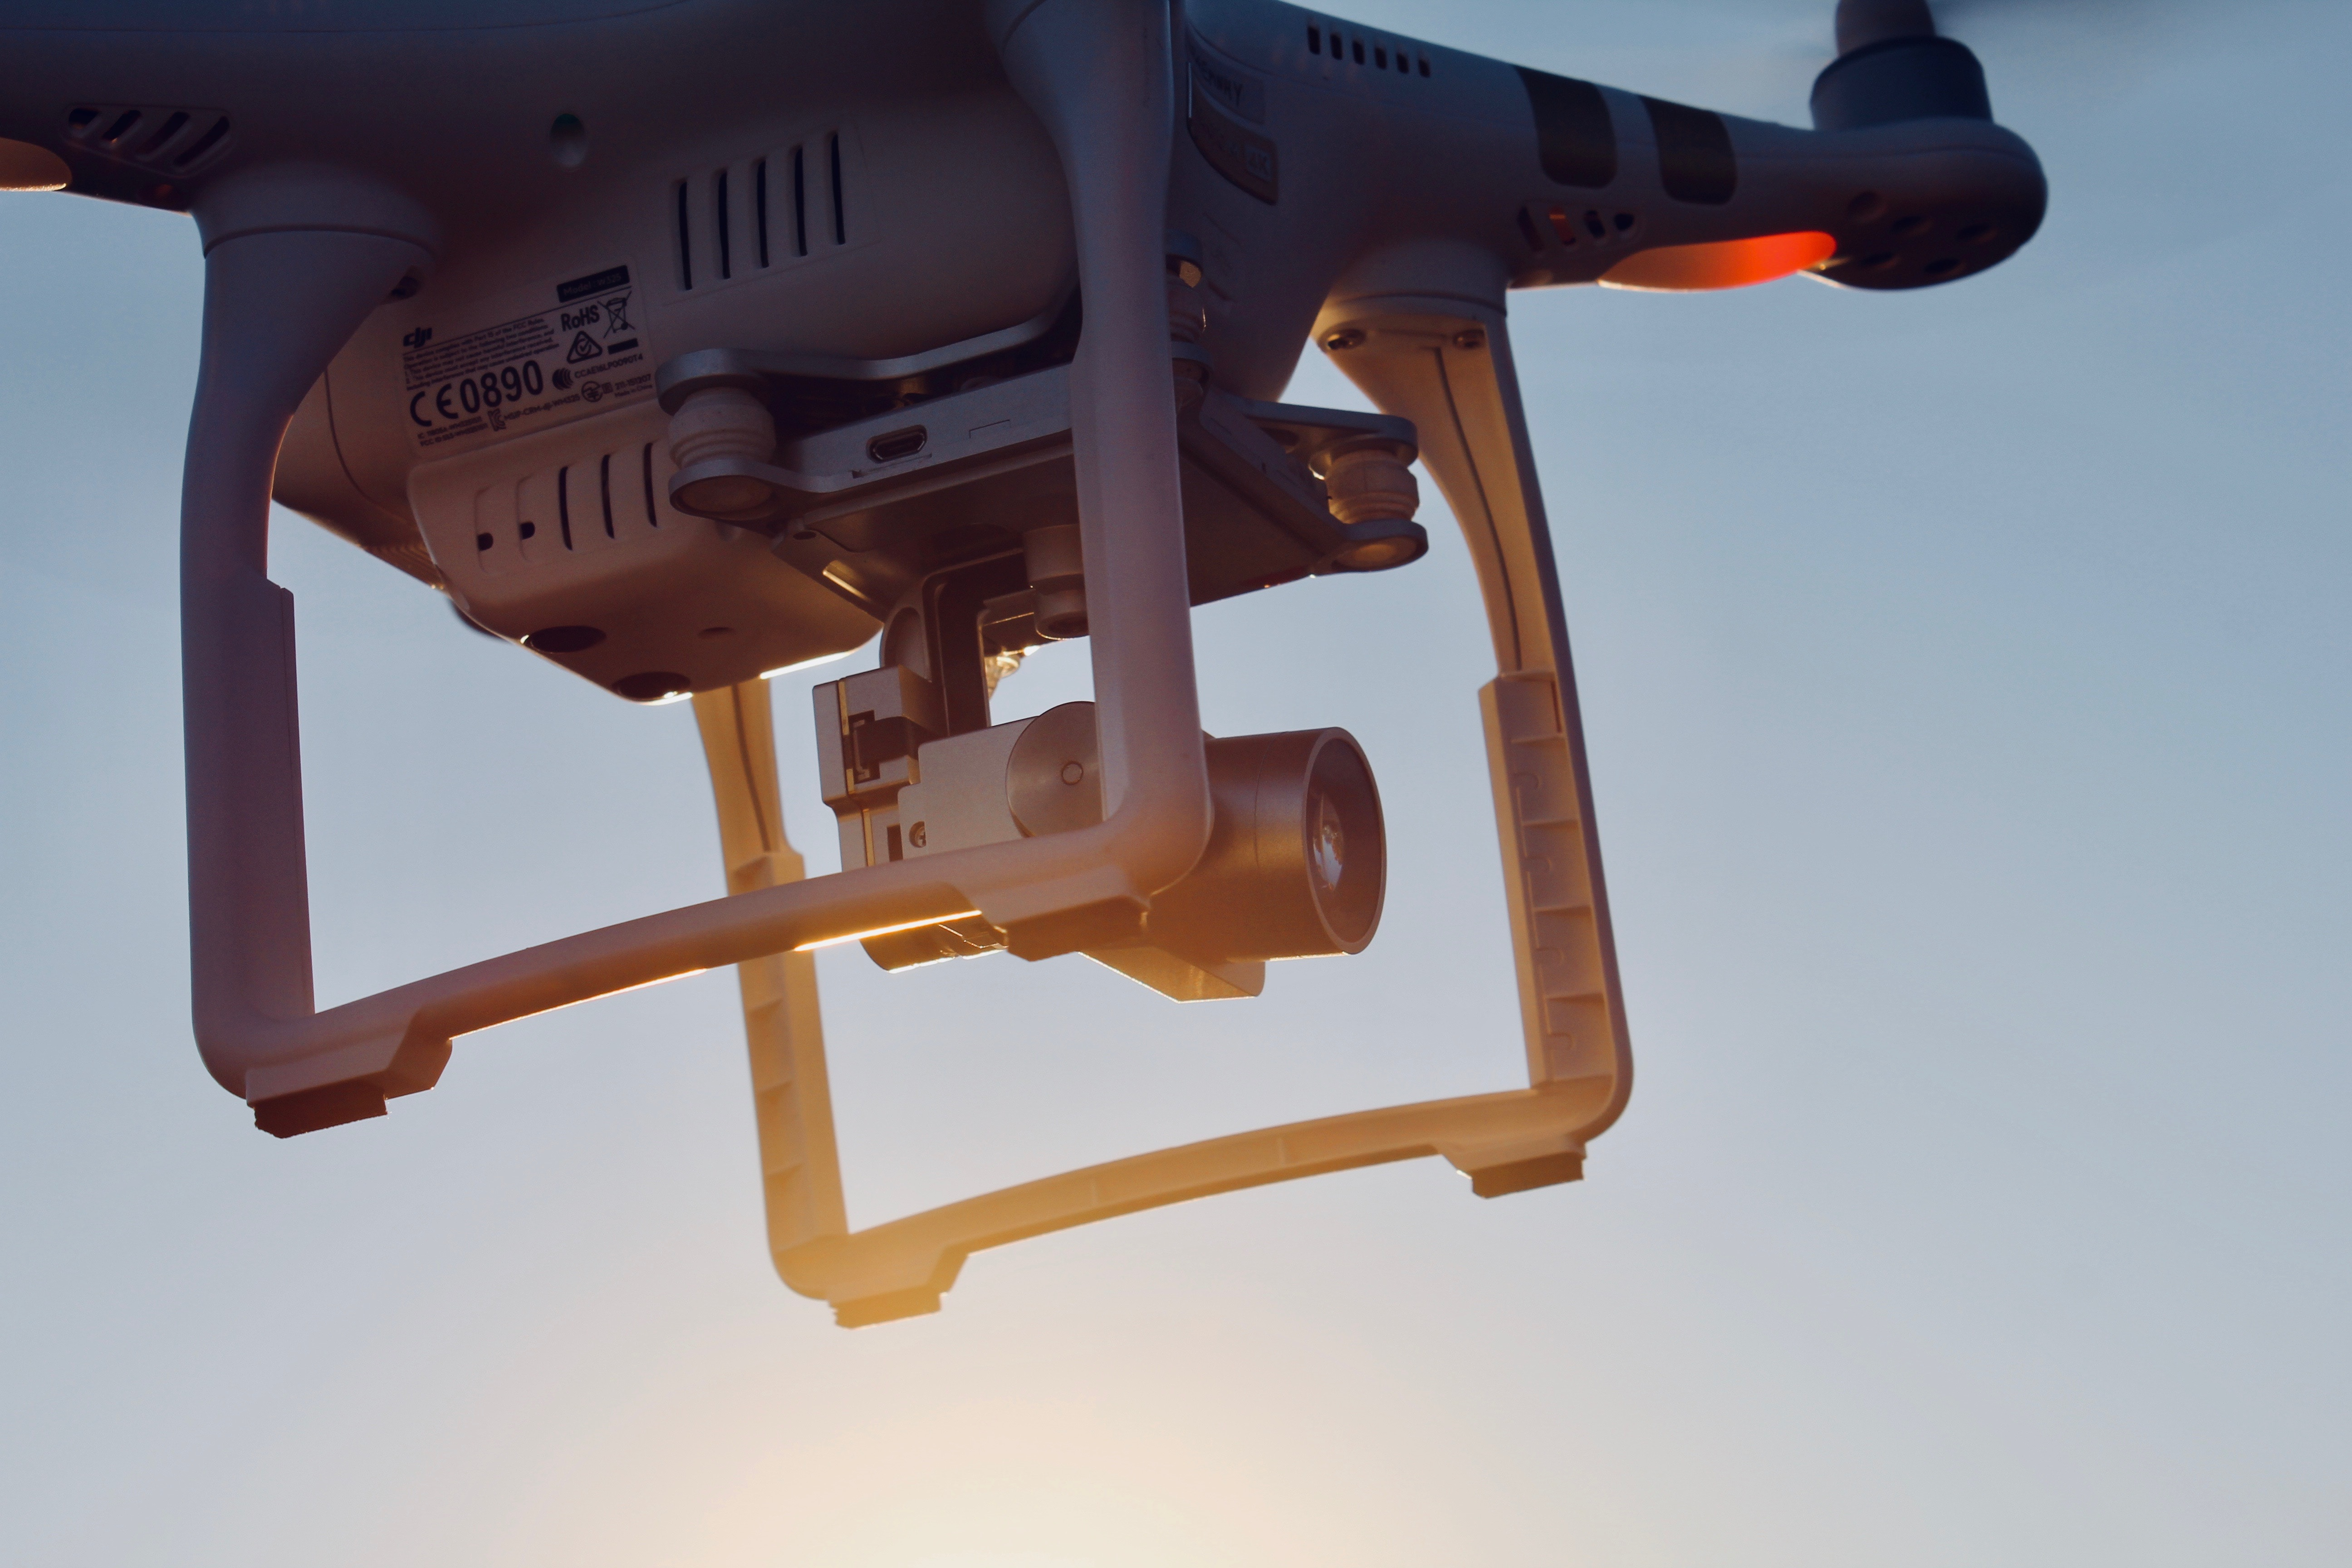 upclose drone in sky